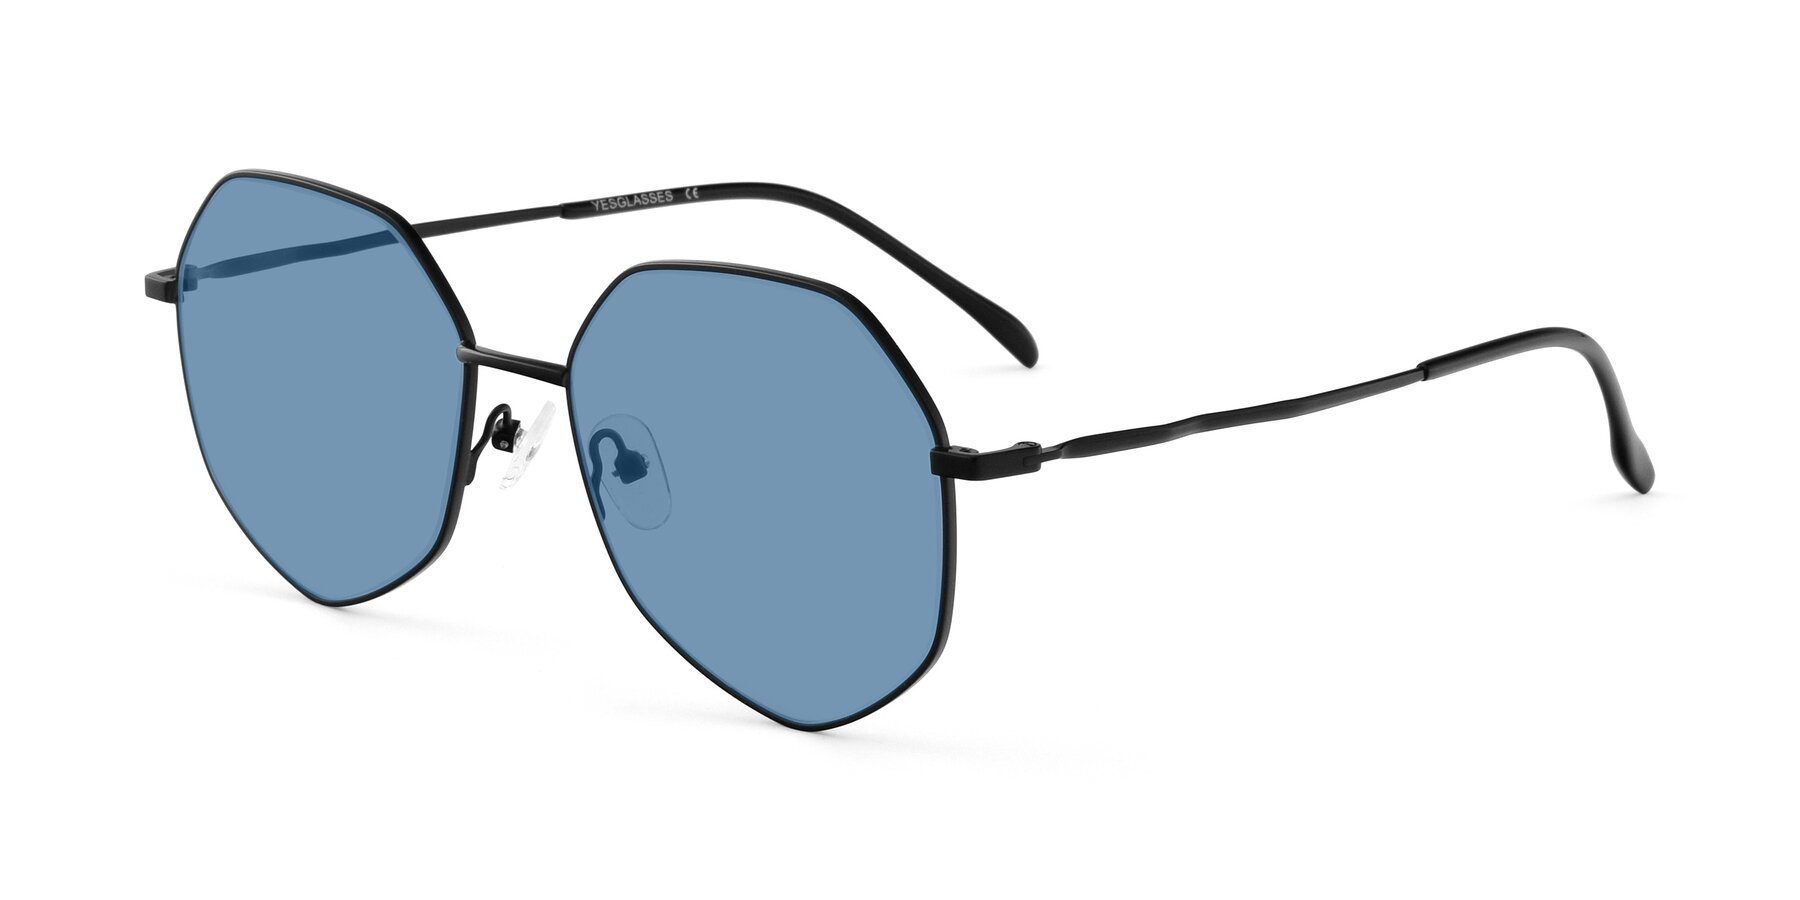 Angle of Sunshine in Black with Medium Blue Tinted Lenses